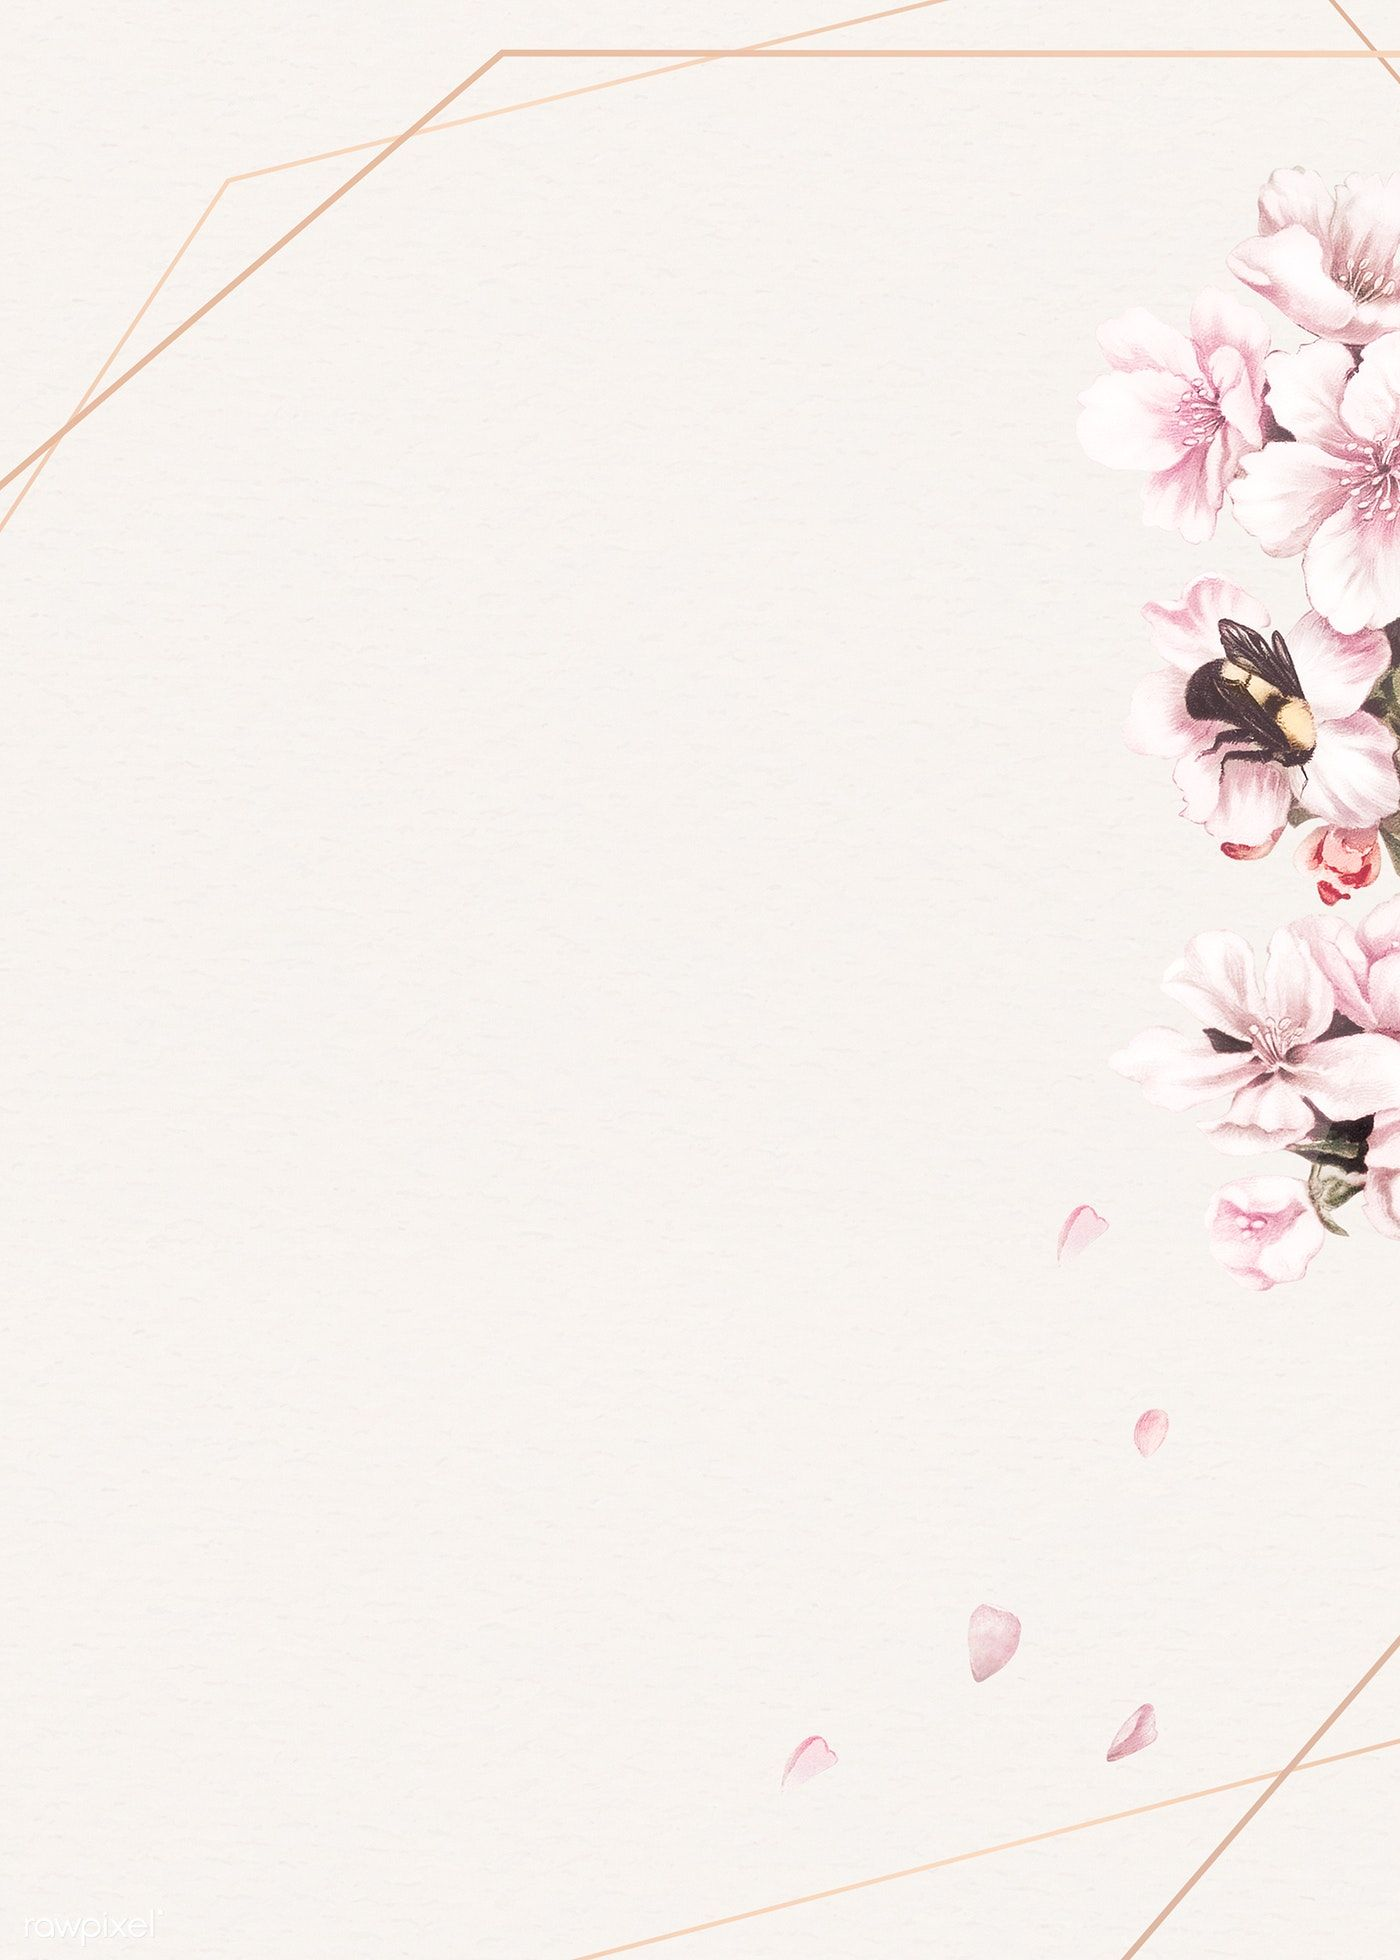 Blank pink floral frame design free image by rawpixel